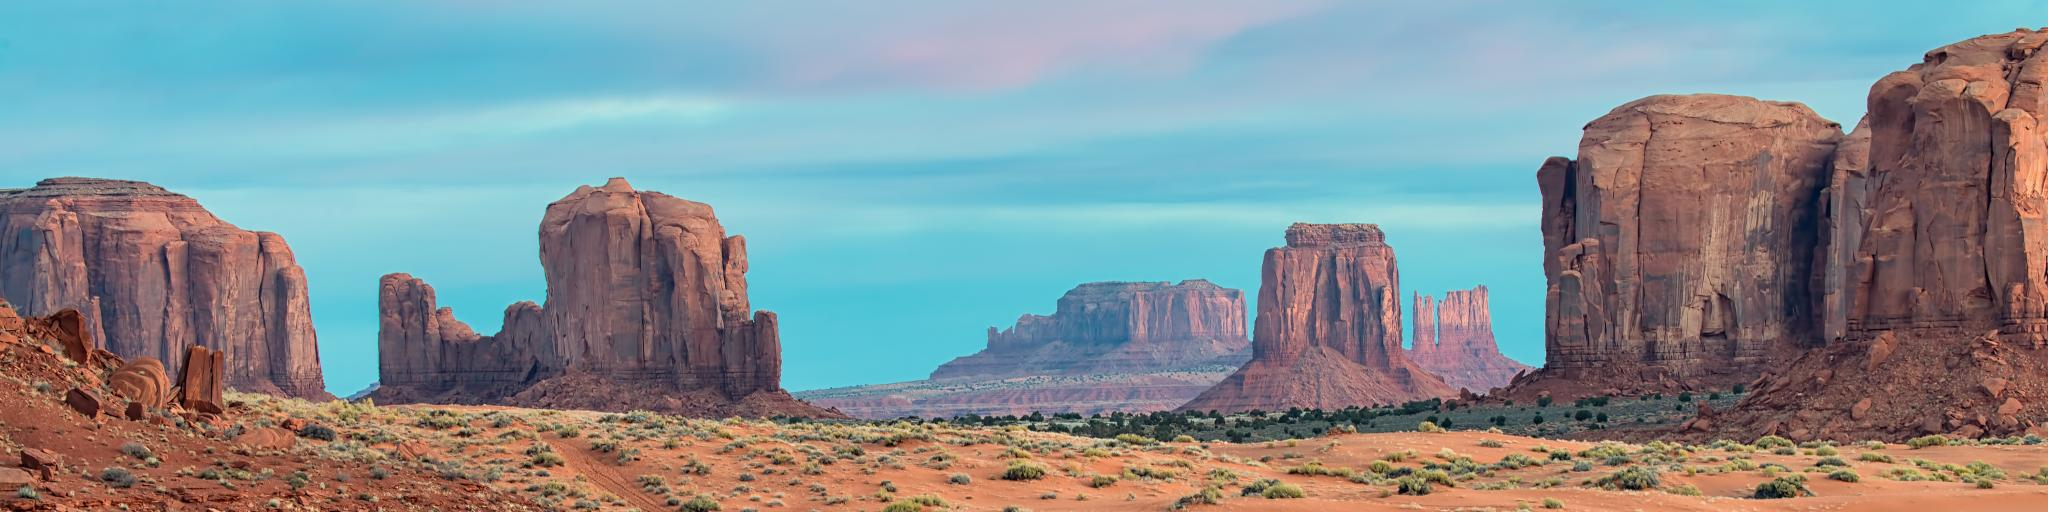 Sunrise at the buttes of Monument Valley on the Arizona - Utah border.